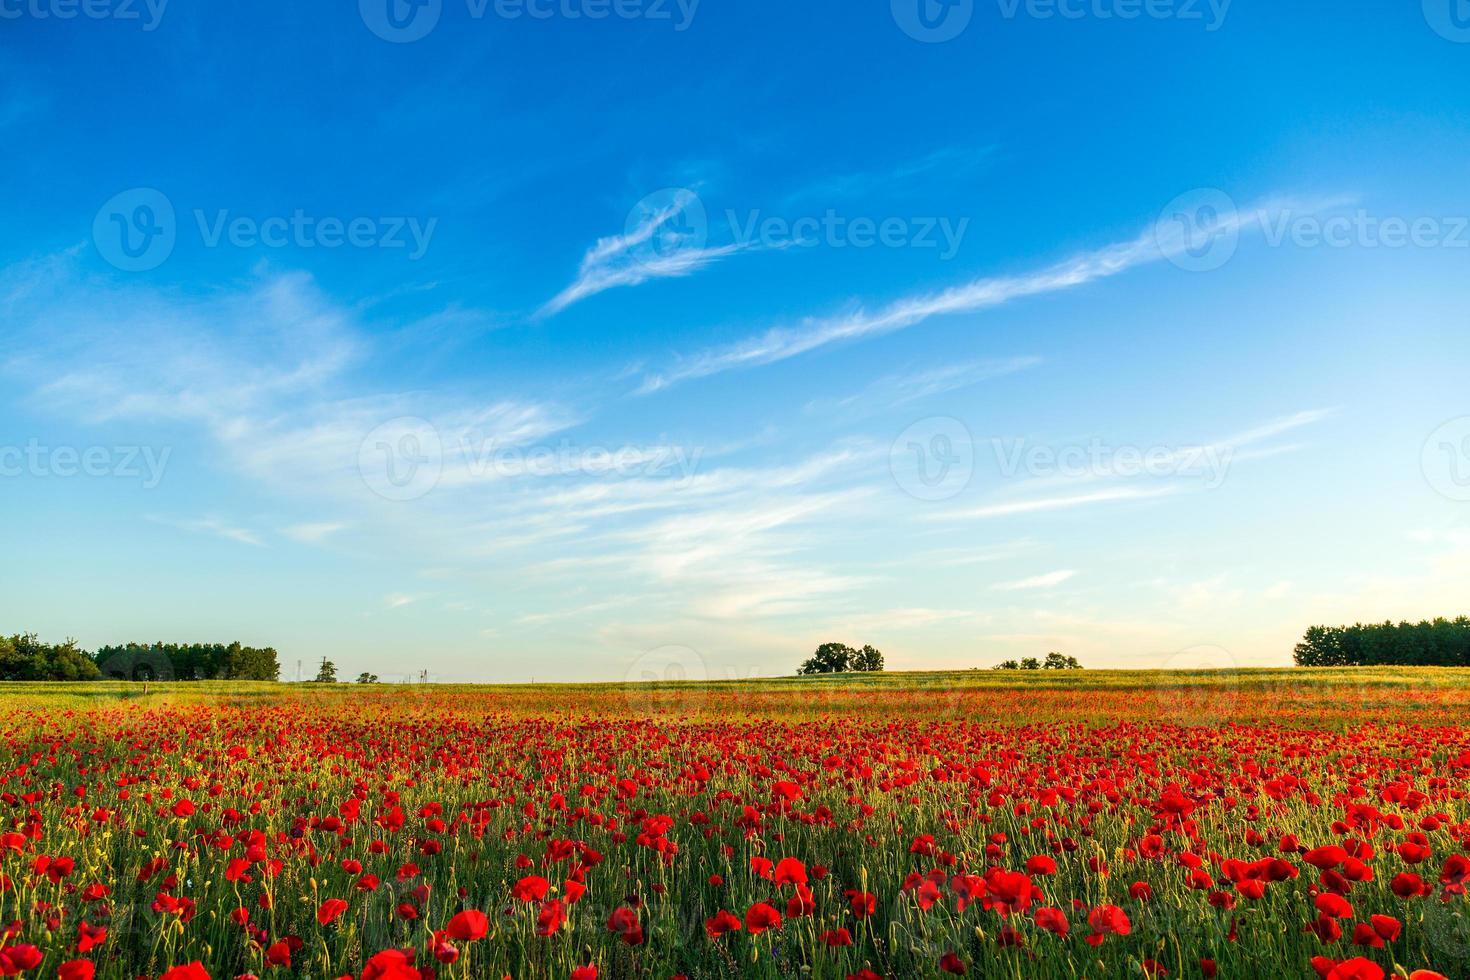 Poppies field at sunset photo